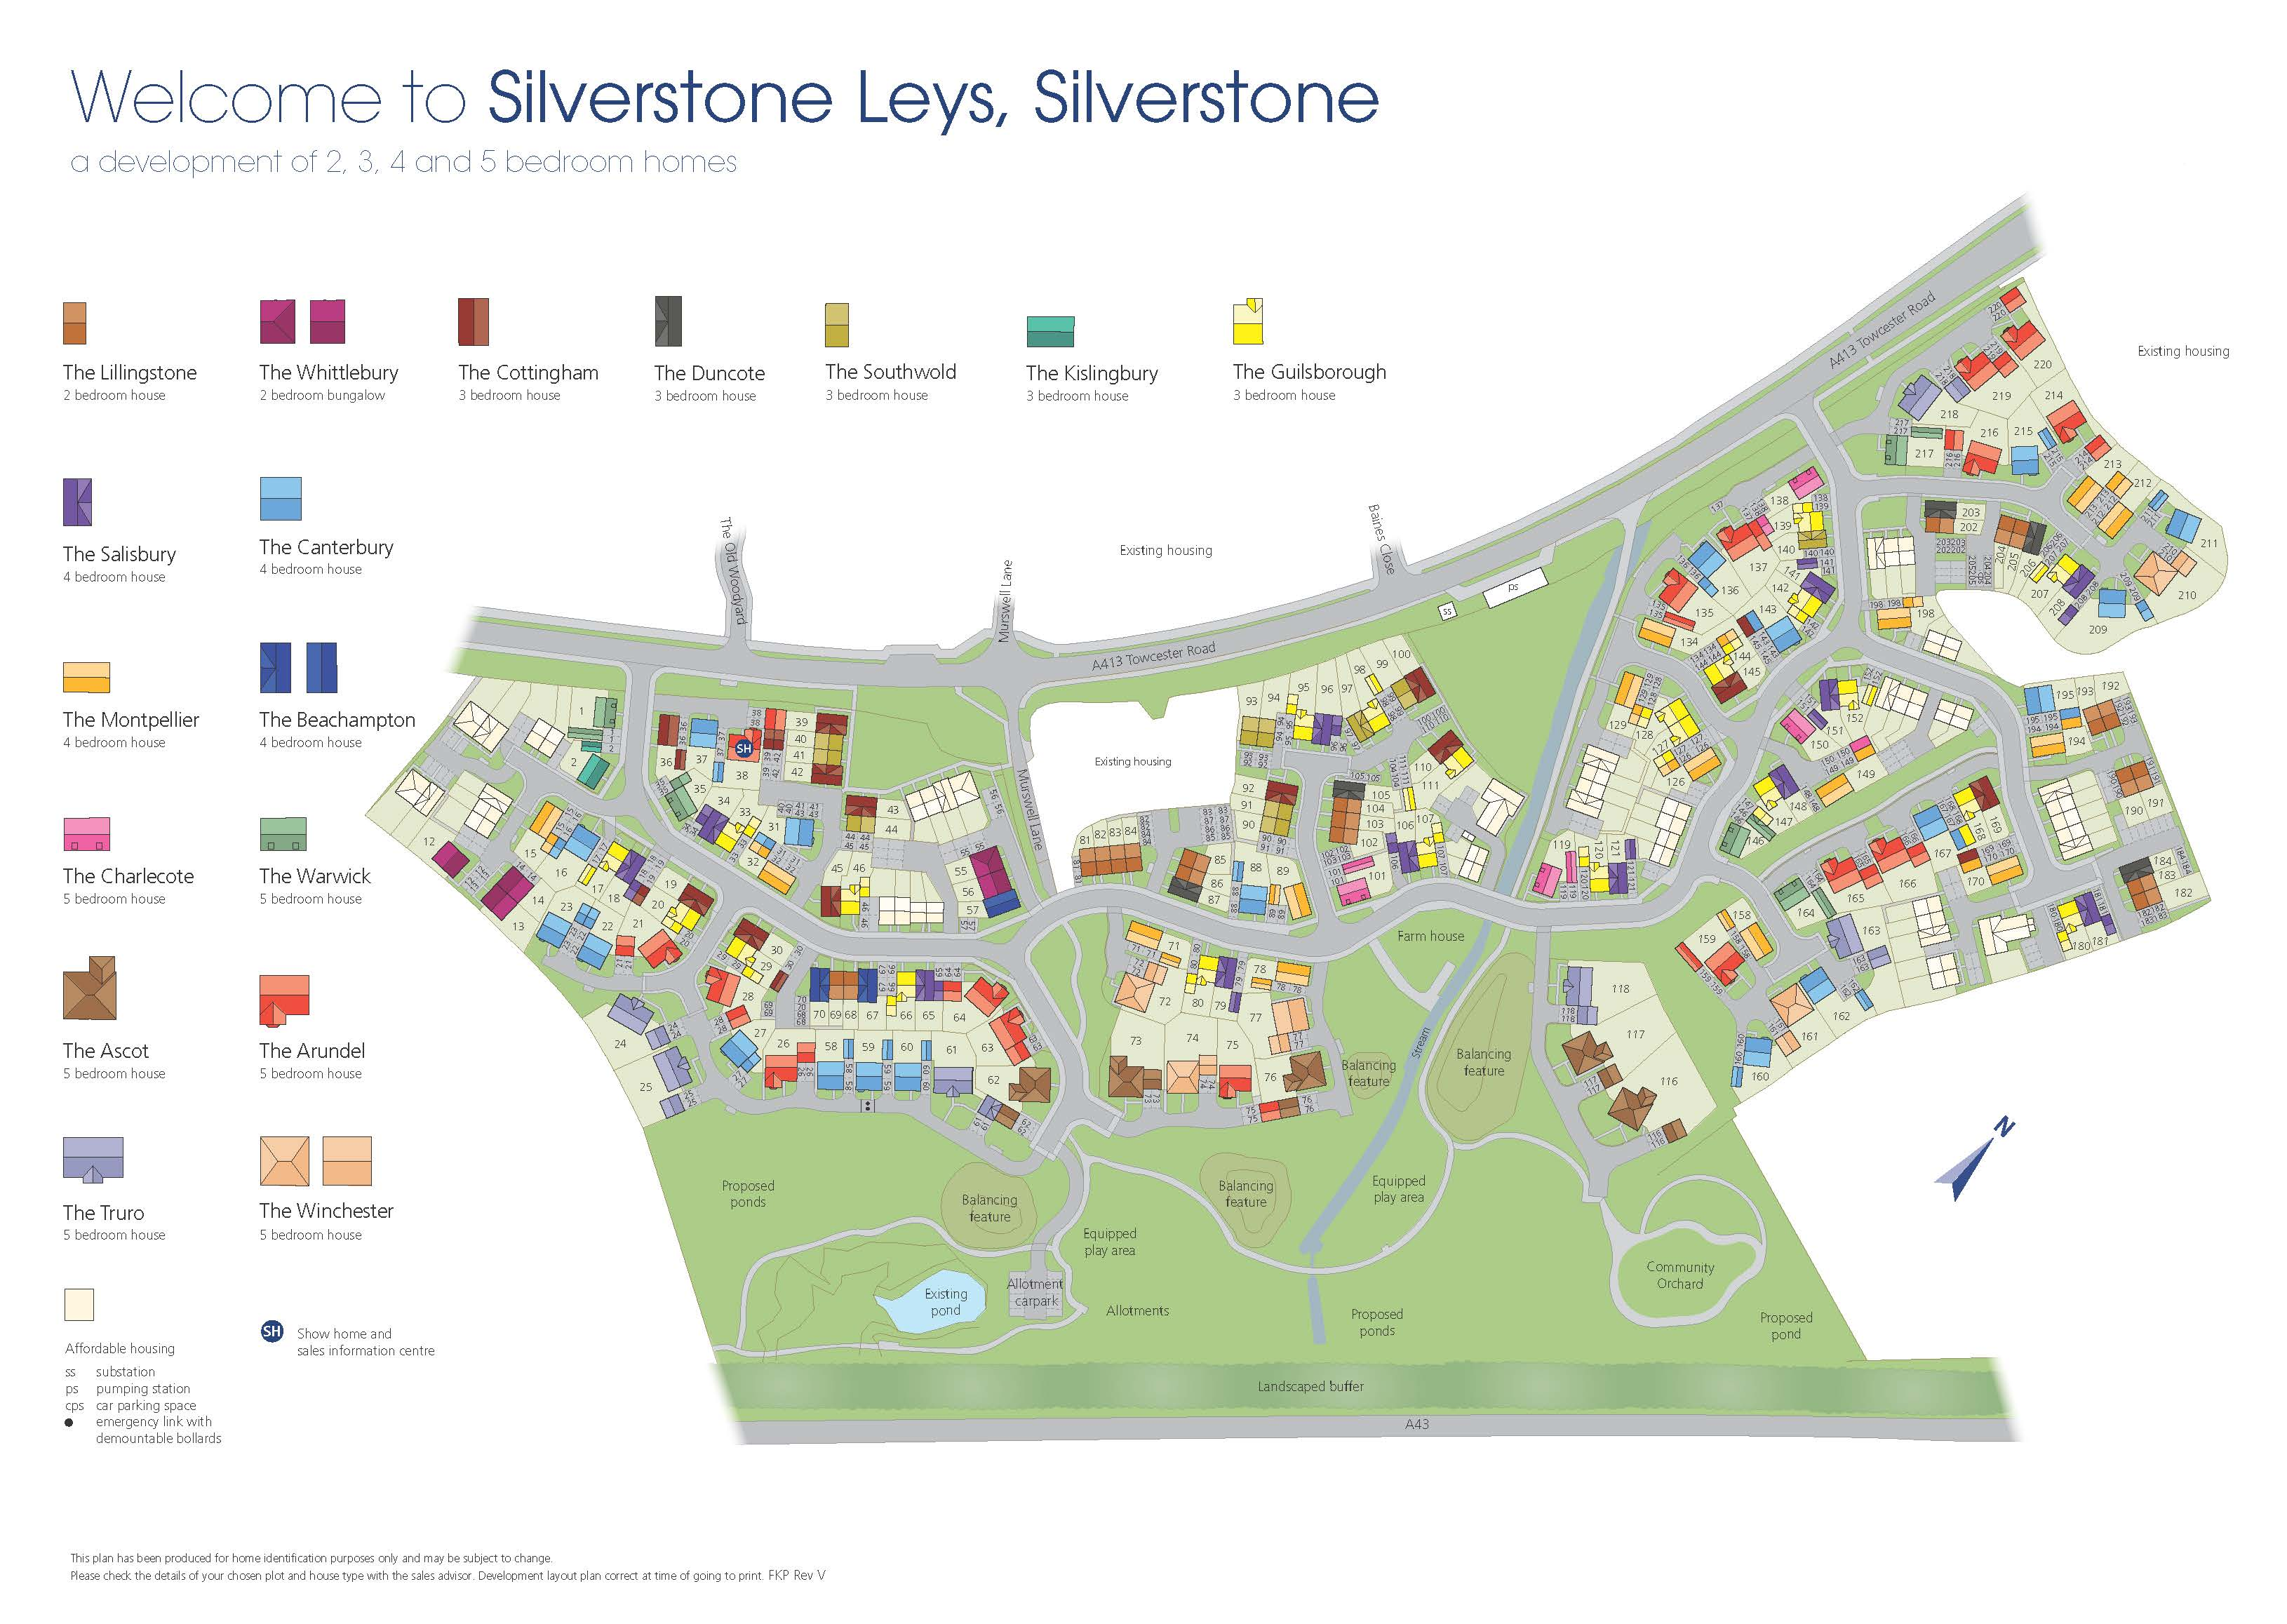 Silverstone Leys Site Map